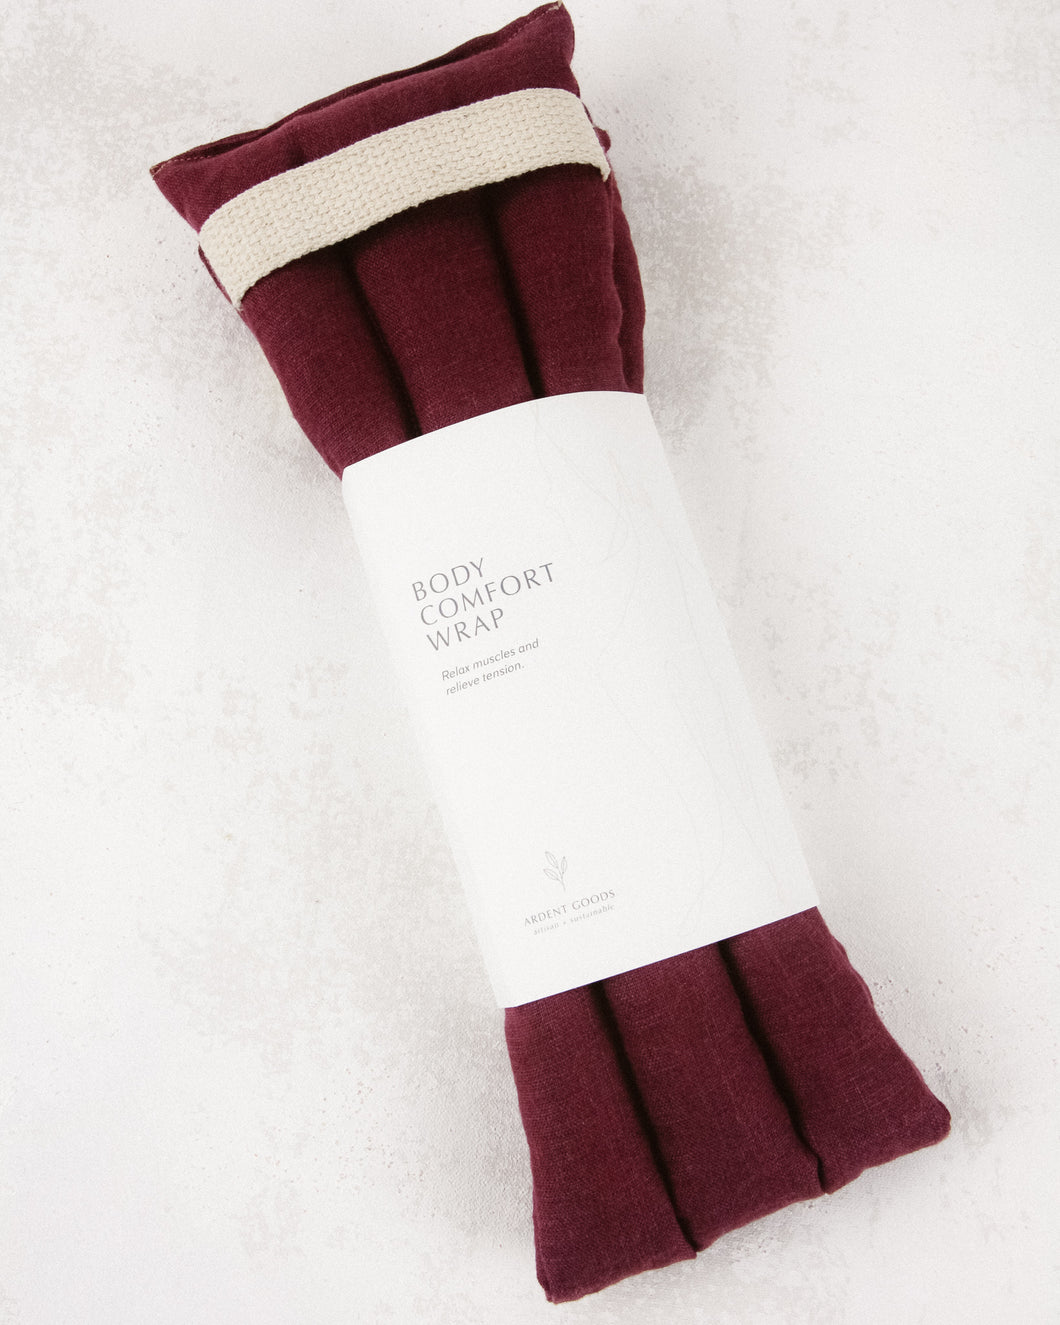 Linen Body Comfort Wrap - Mulberry